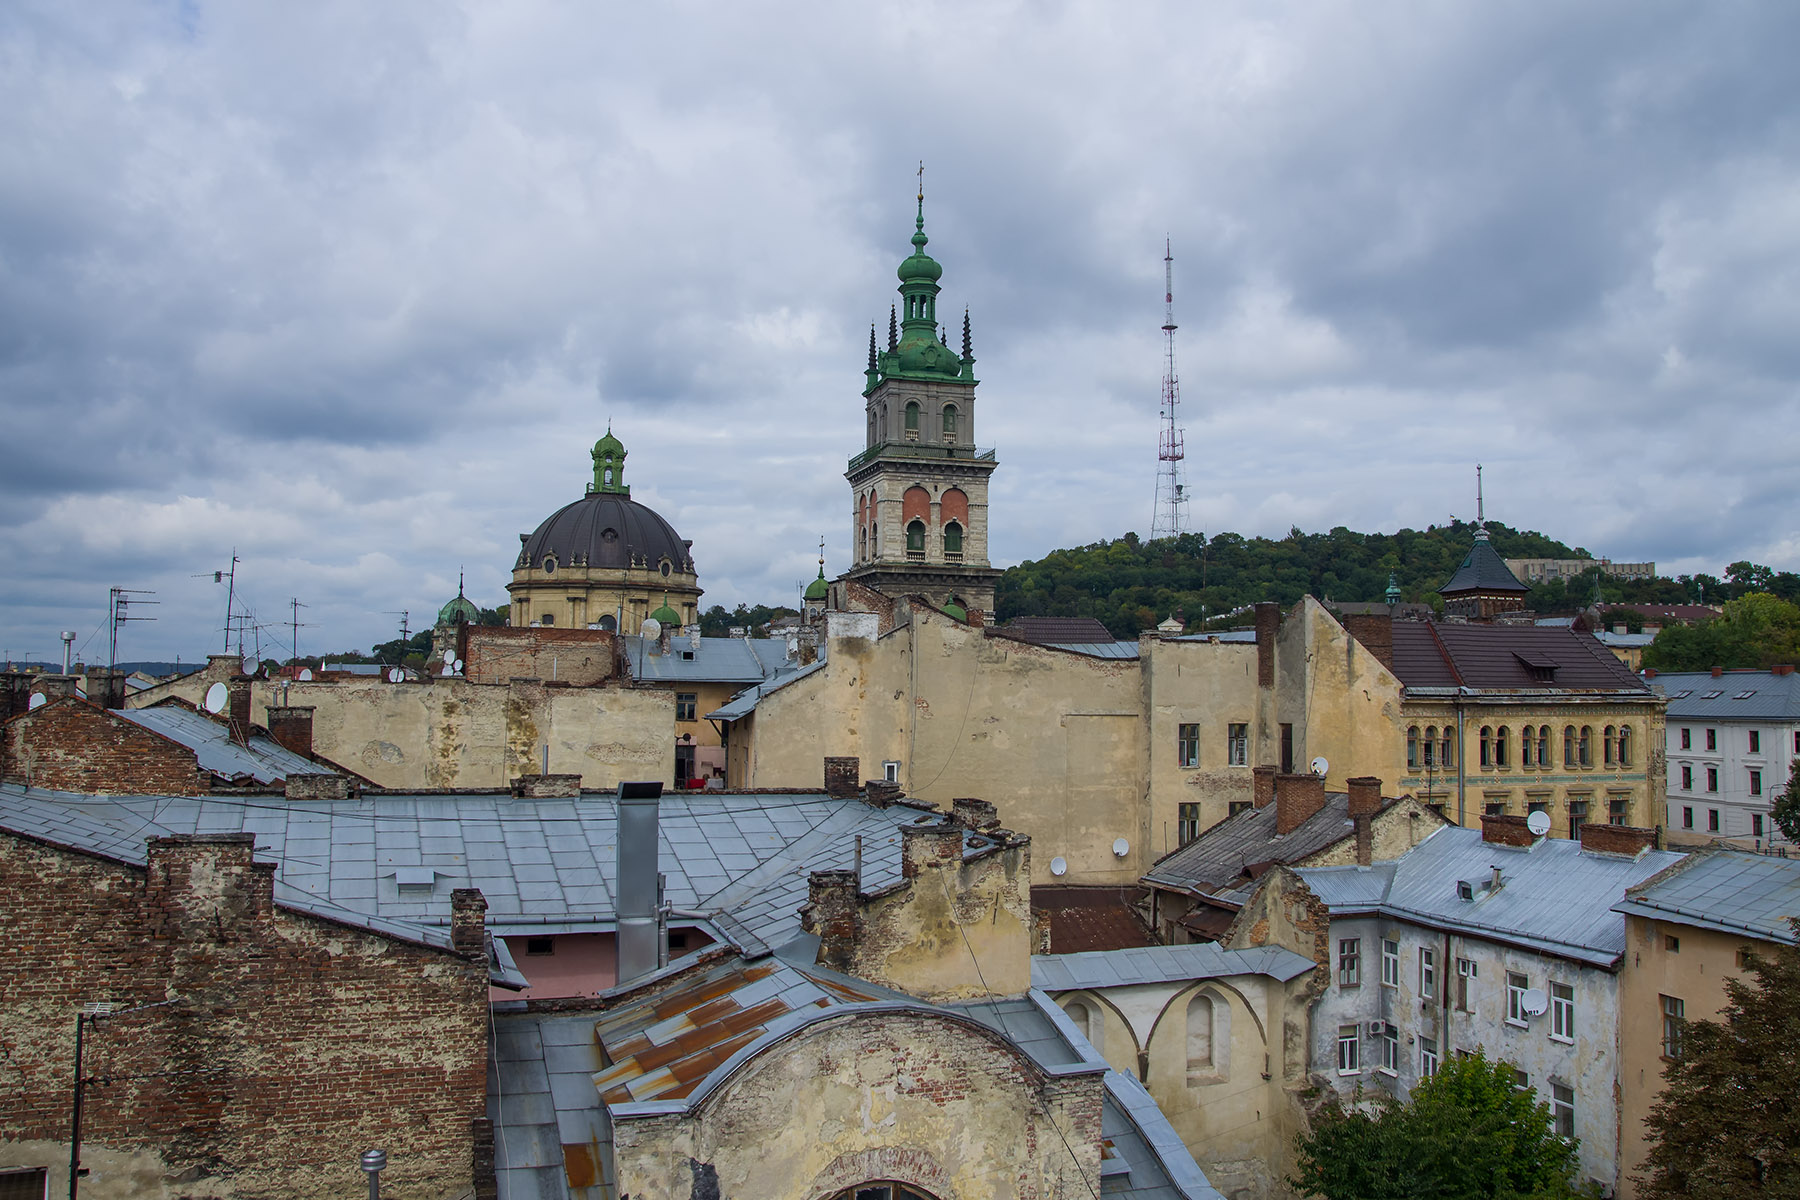 Lviv from the rooftops